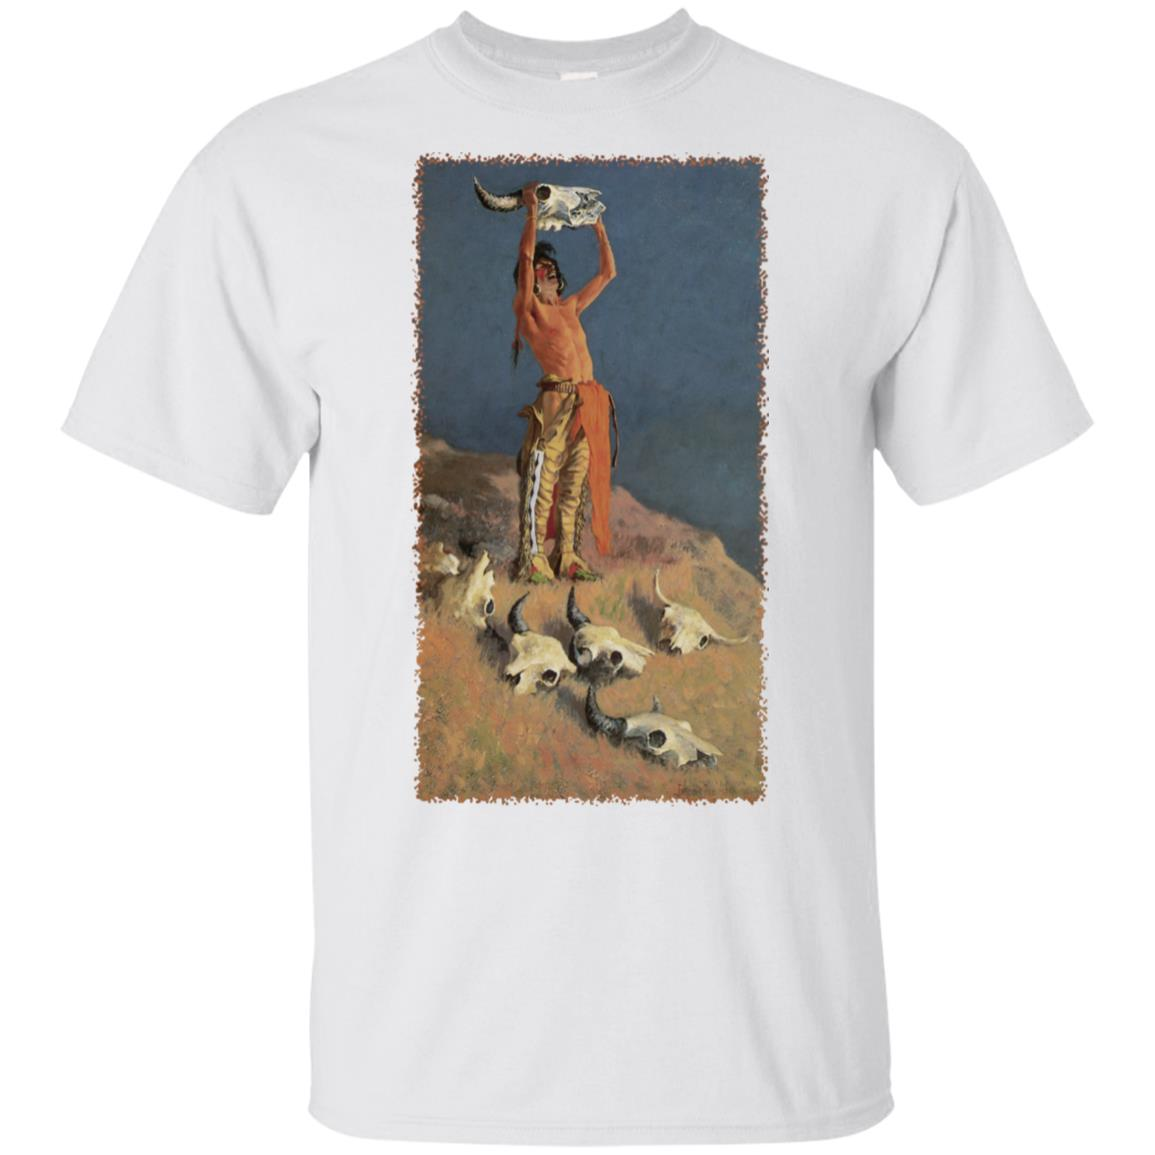 Conjuring Back the Buffalo by Frederic Remington Unisex Short Sleeve